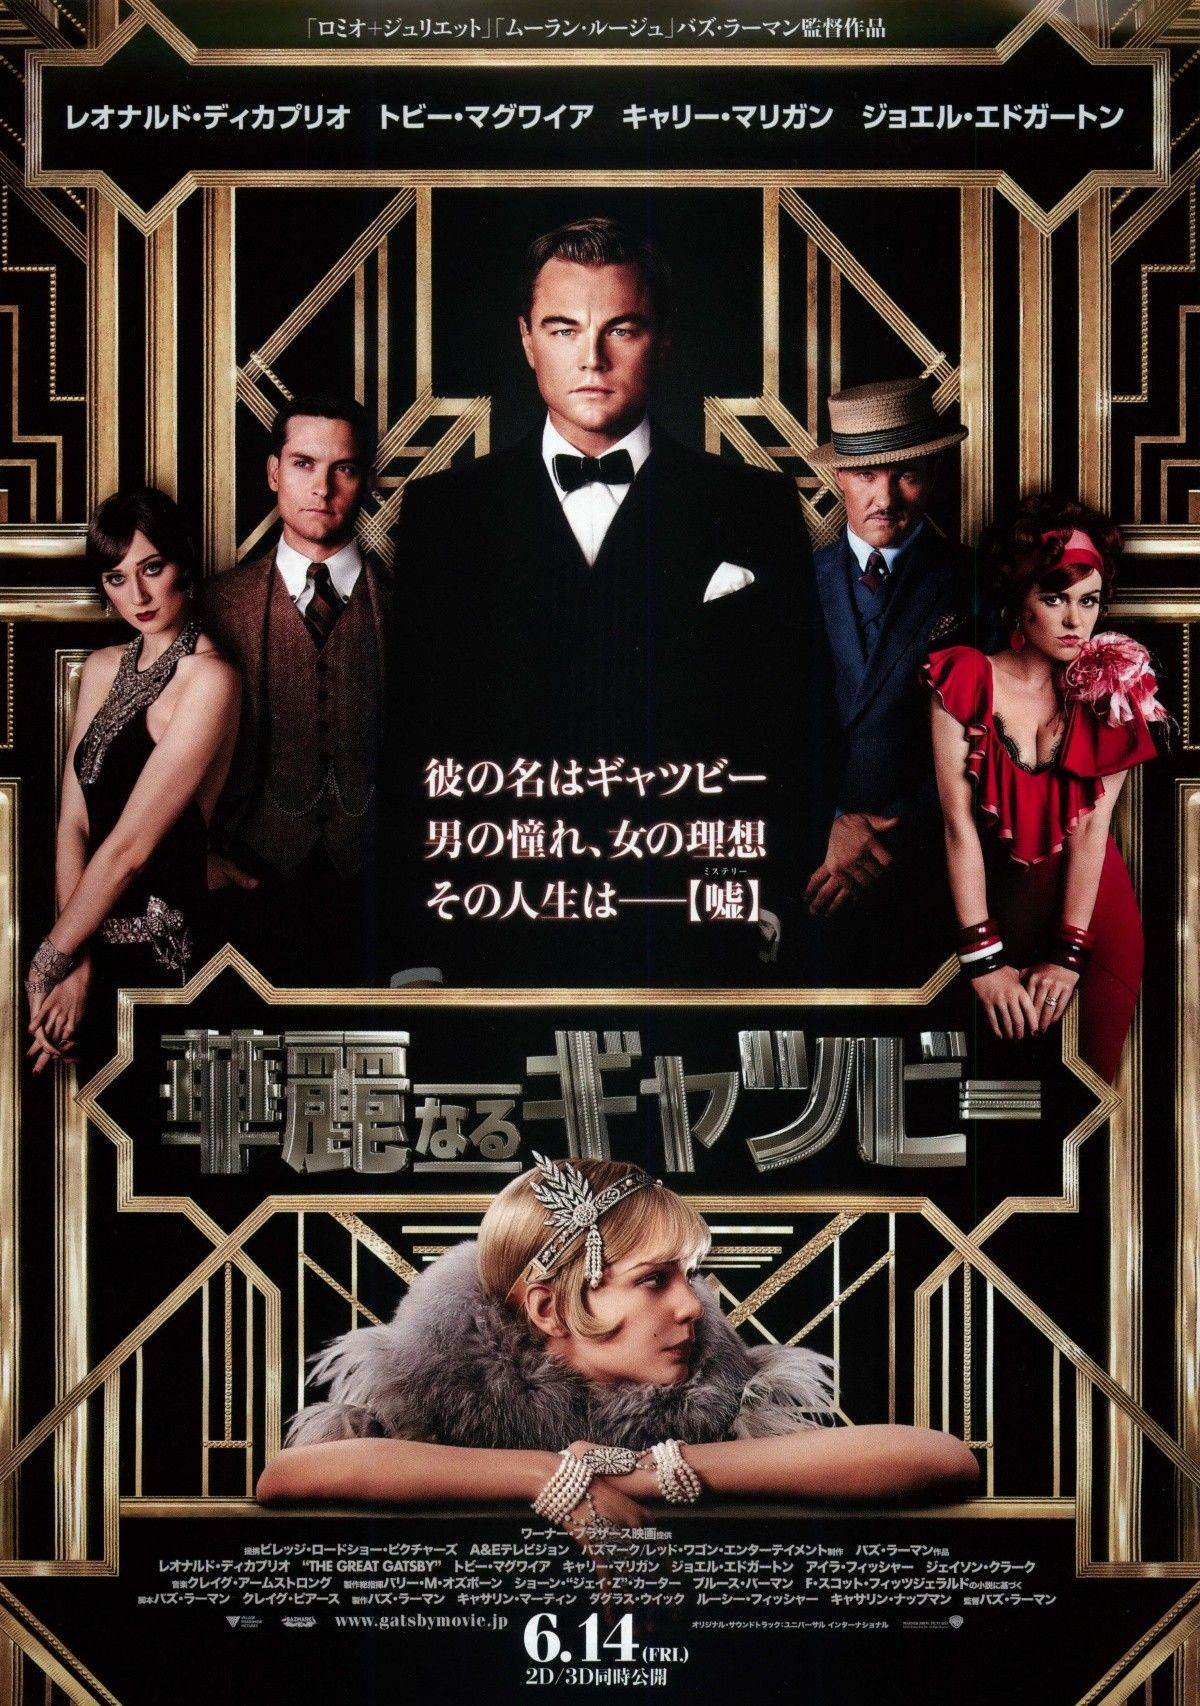 hope the great gatsby